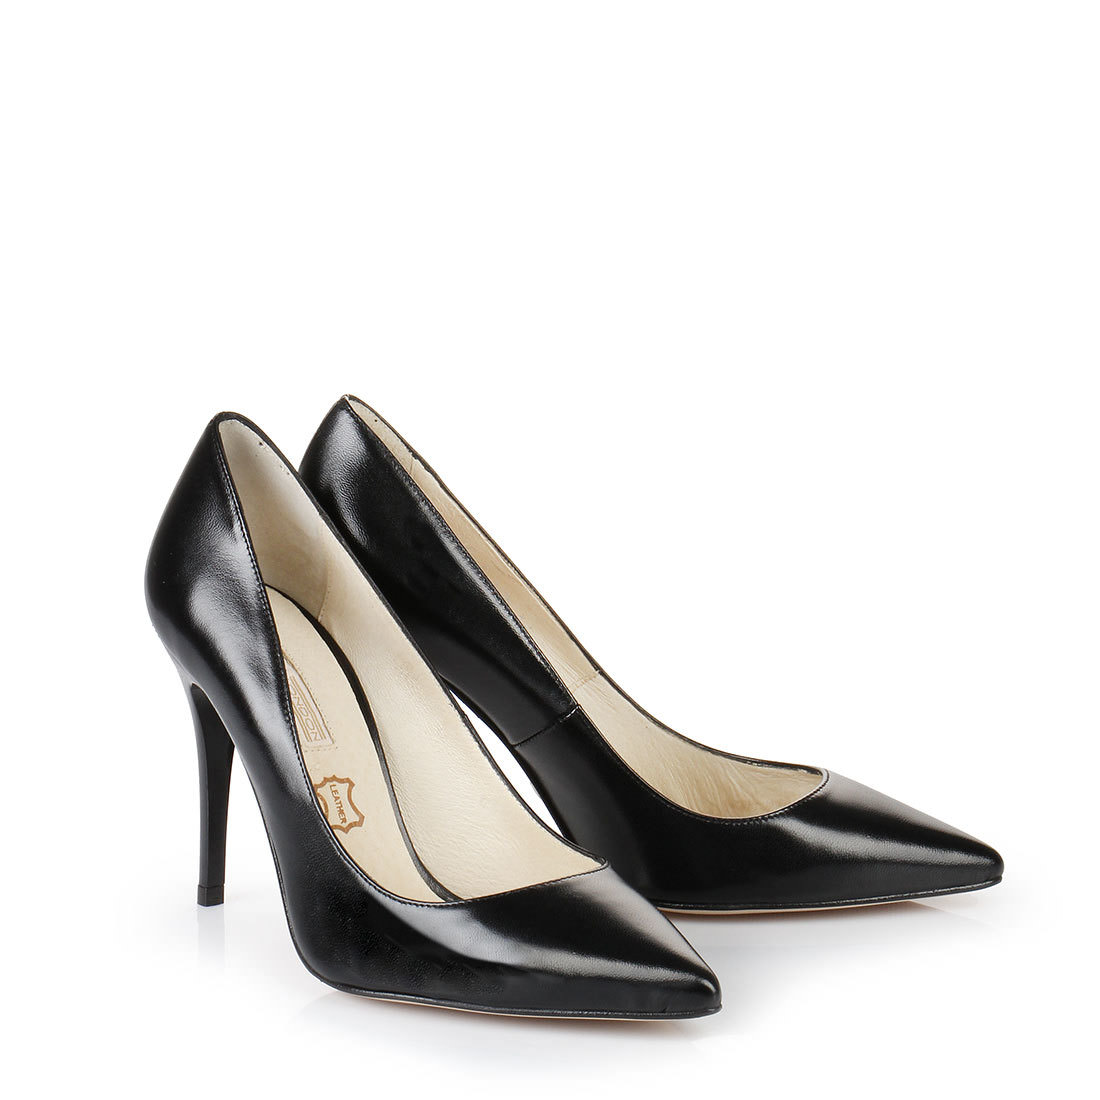 buffalo pumps in black buy online in buffalo online shop buffalo